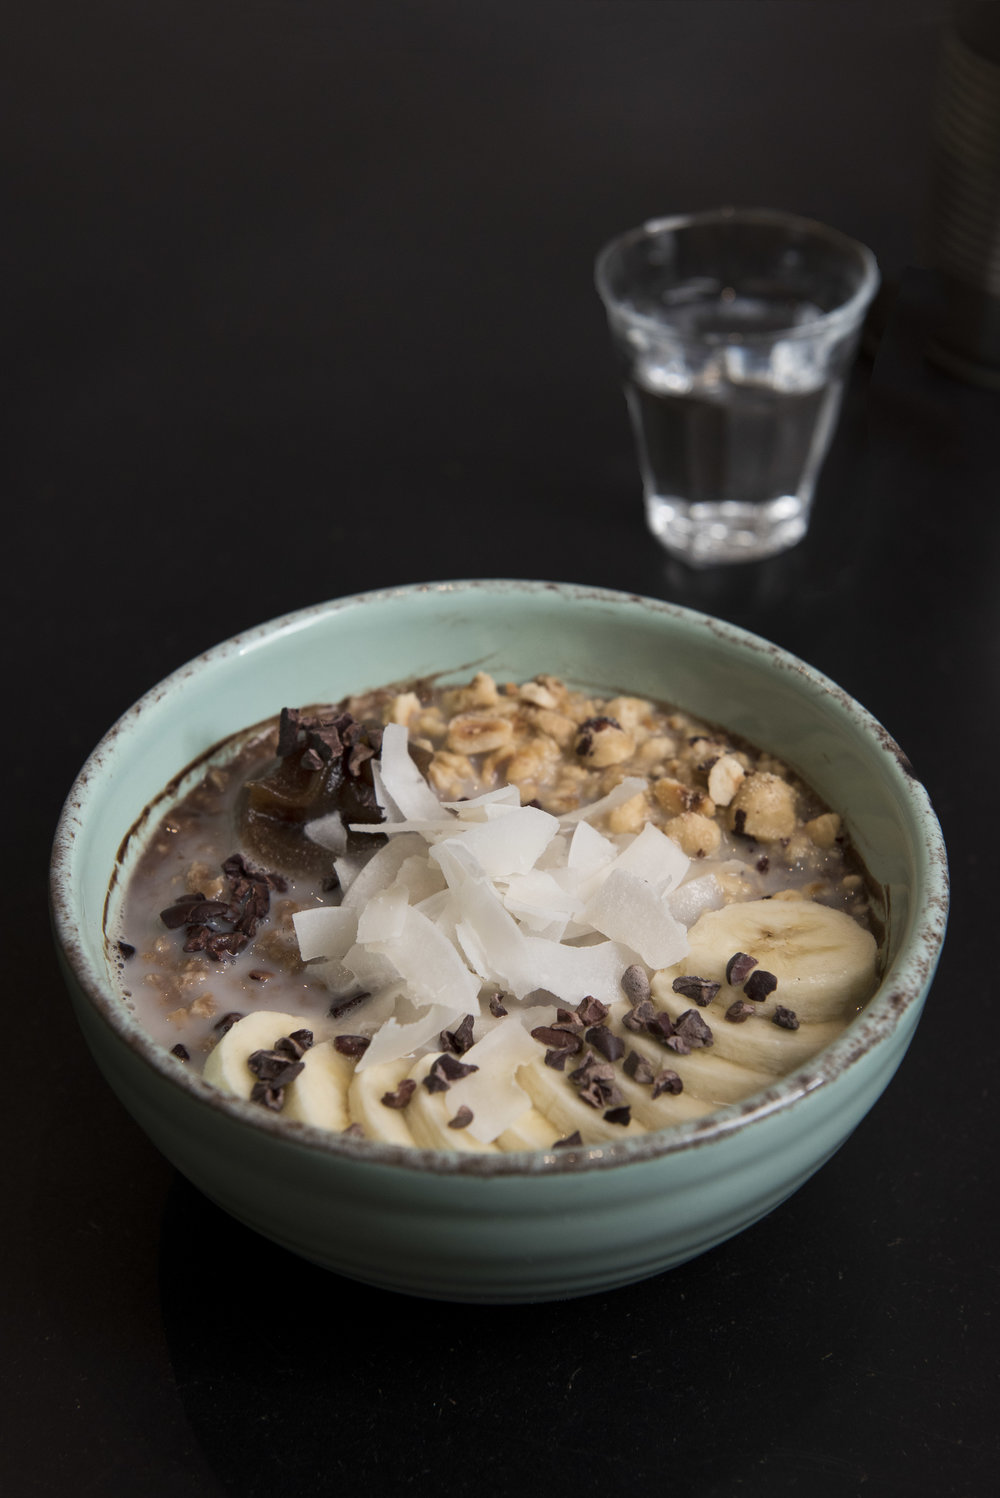 Porridge at Bohl, Barcelona